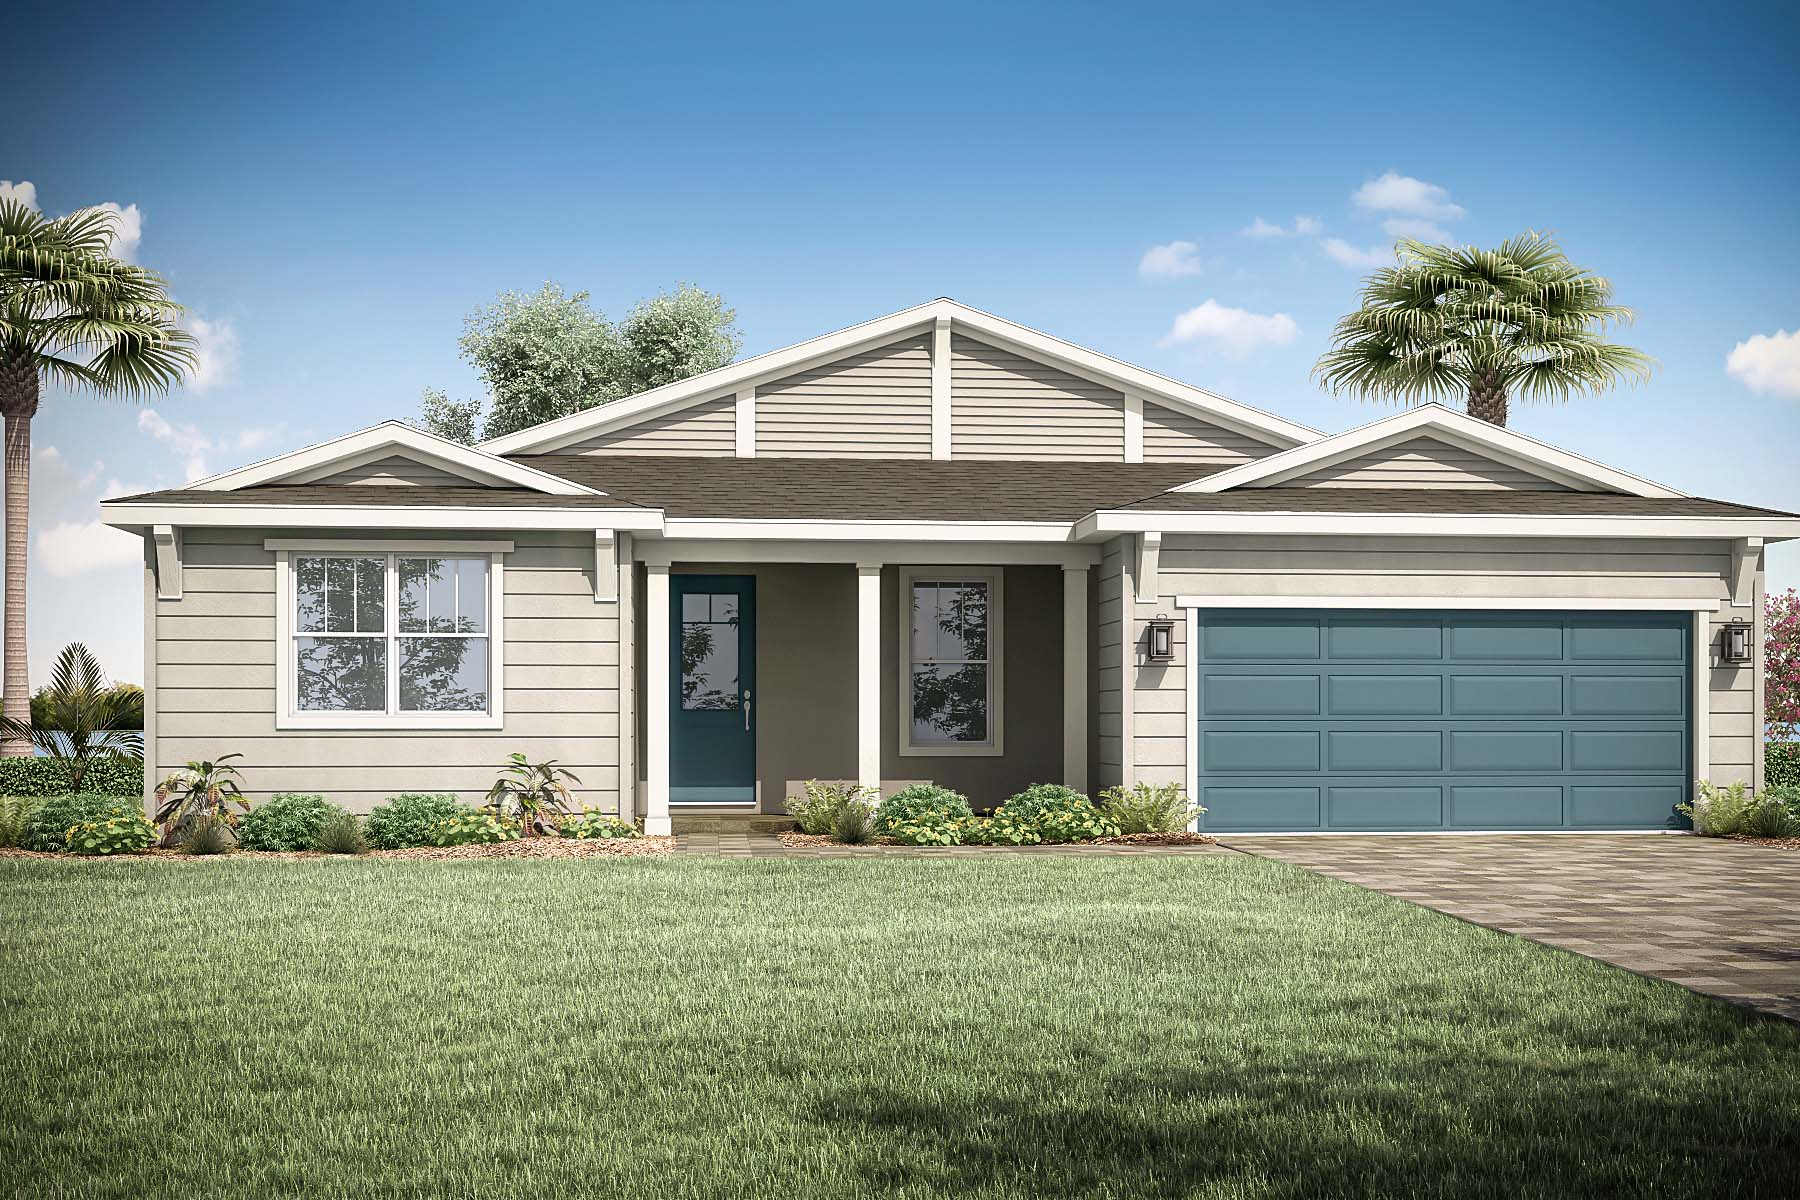 Citron Plan Elevation Front at Tradition - Manderlie in Port St. Lucie Florida by Mattamy Homes